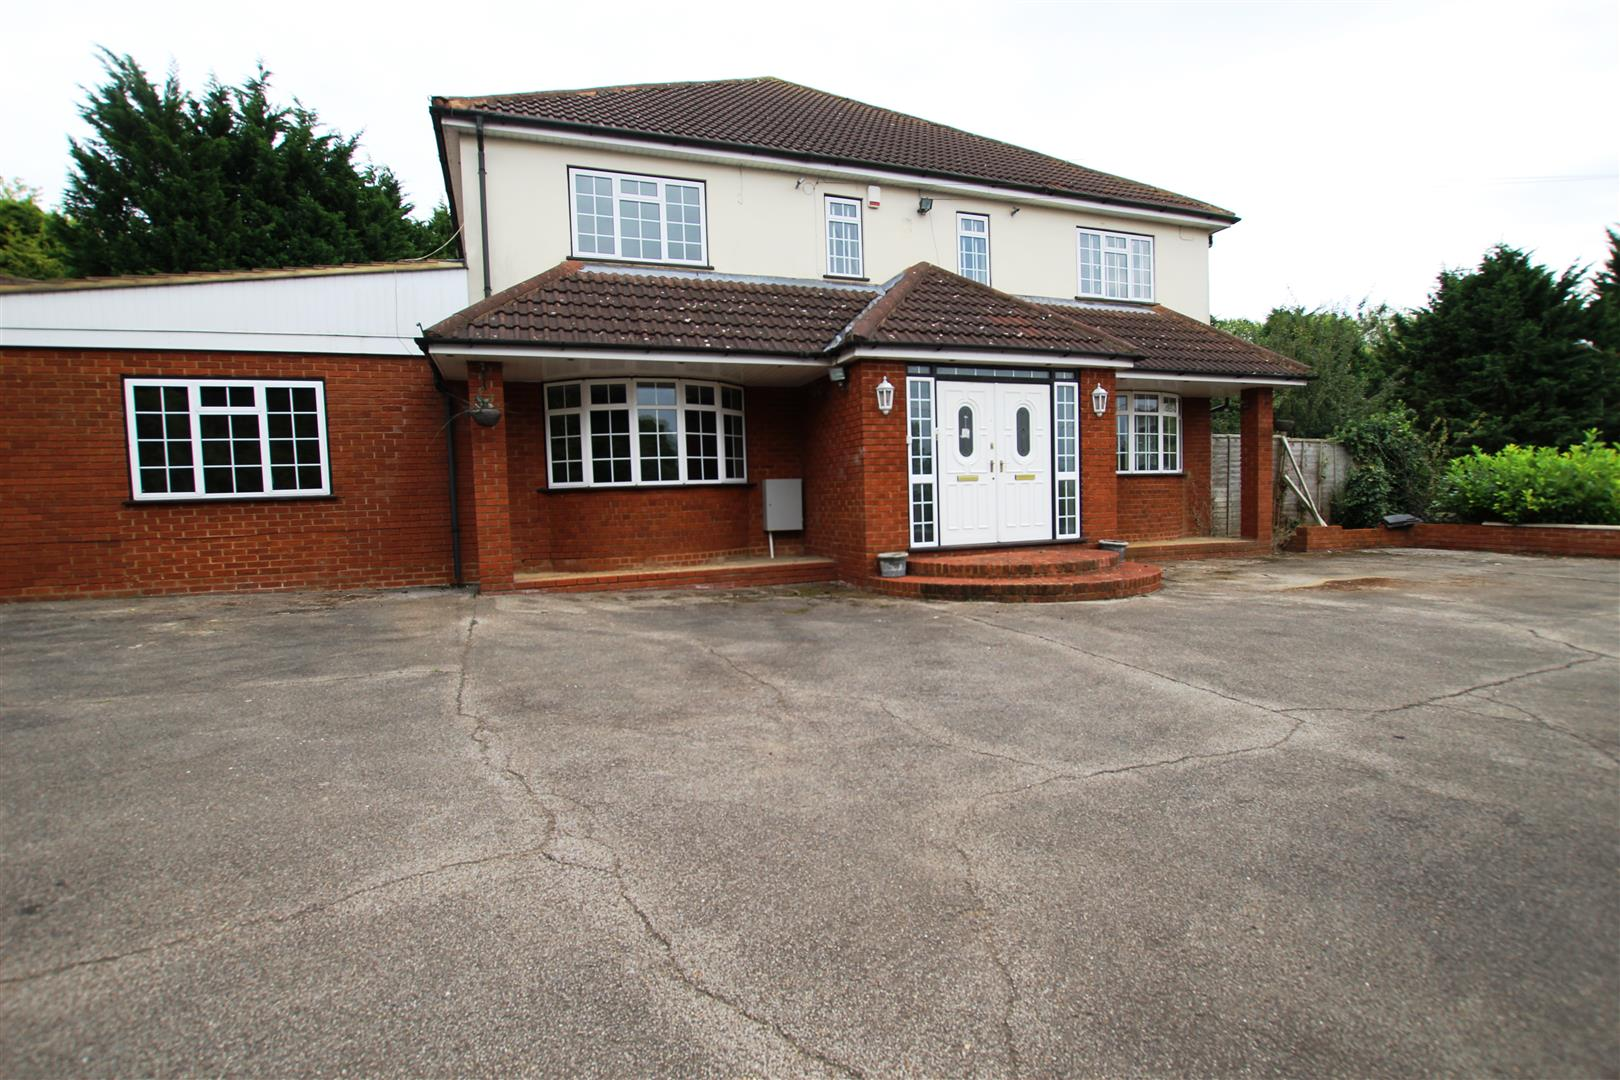 13 Bedrooms Detached House for sale in Chalk Hill, Dunstable